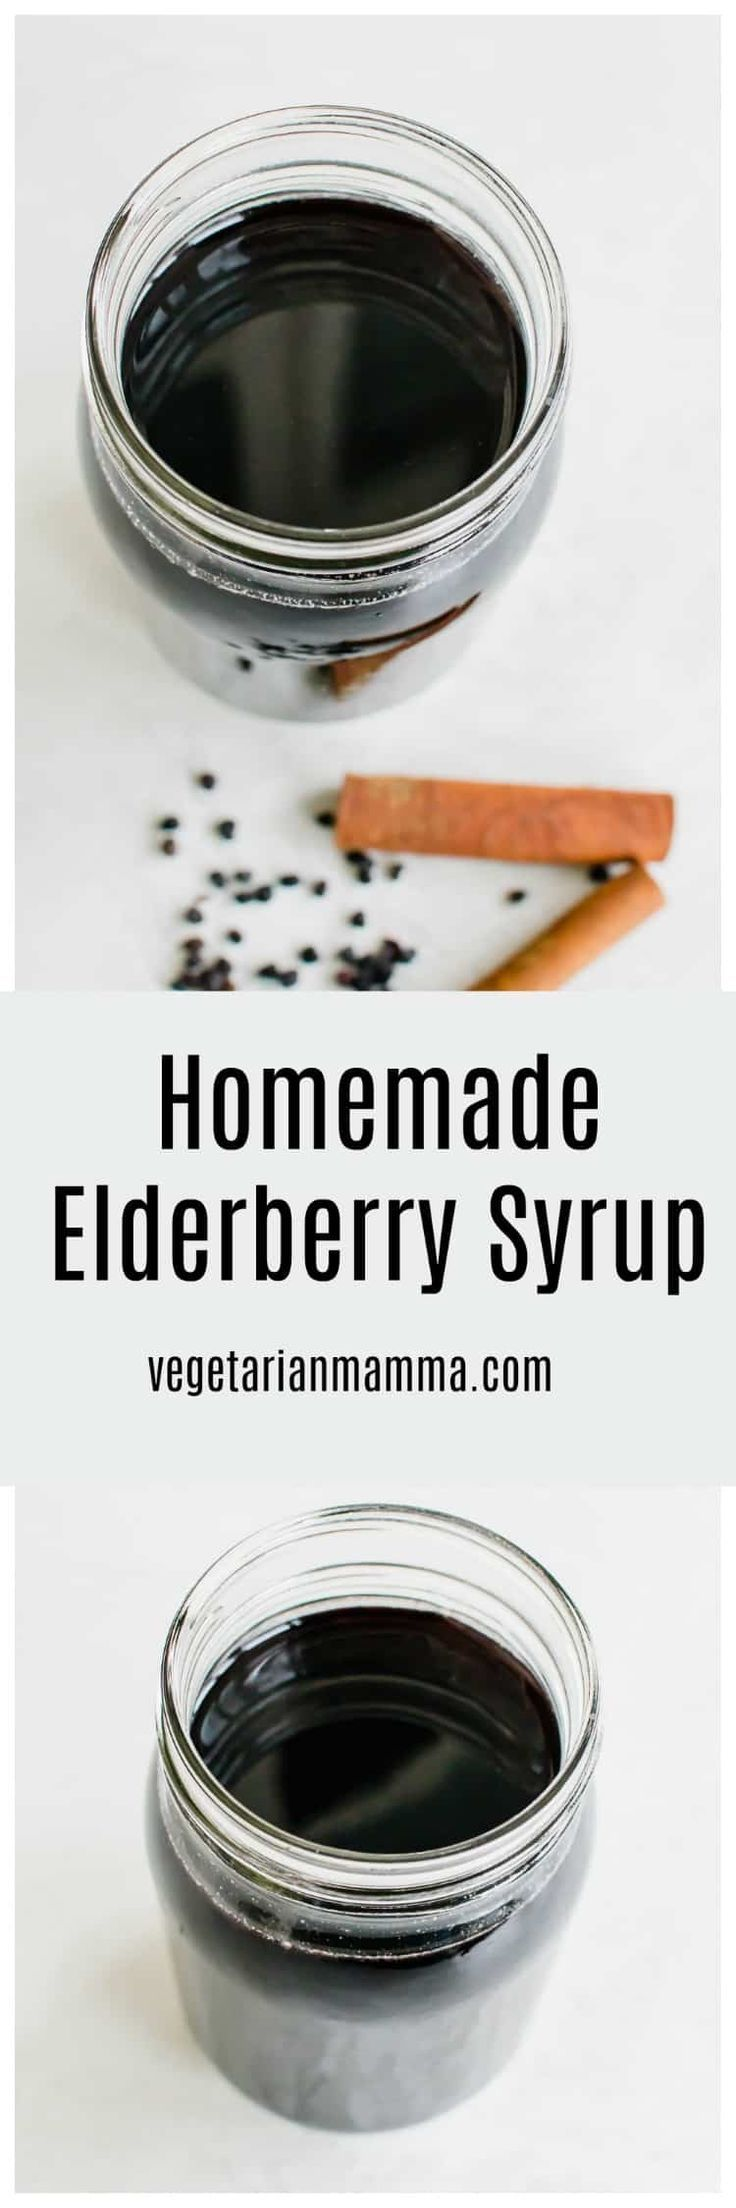 Homemade Elderberry Syrup is a cost effective way to enjoy the benefits of Elderberry Syrup at home. Whether you are using it for overall wellness or as a tool to fit against colds, this recipe is delicious! I have been reading and hearing so much about Elderberry Syrup! I read that people use it to...